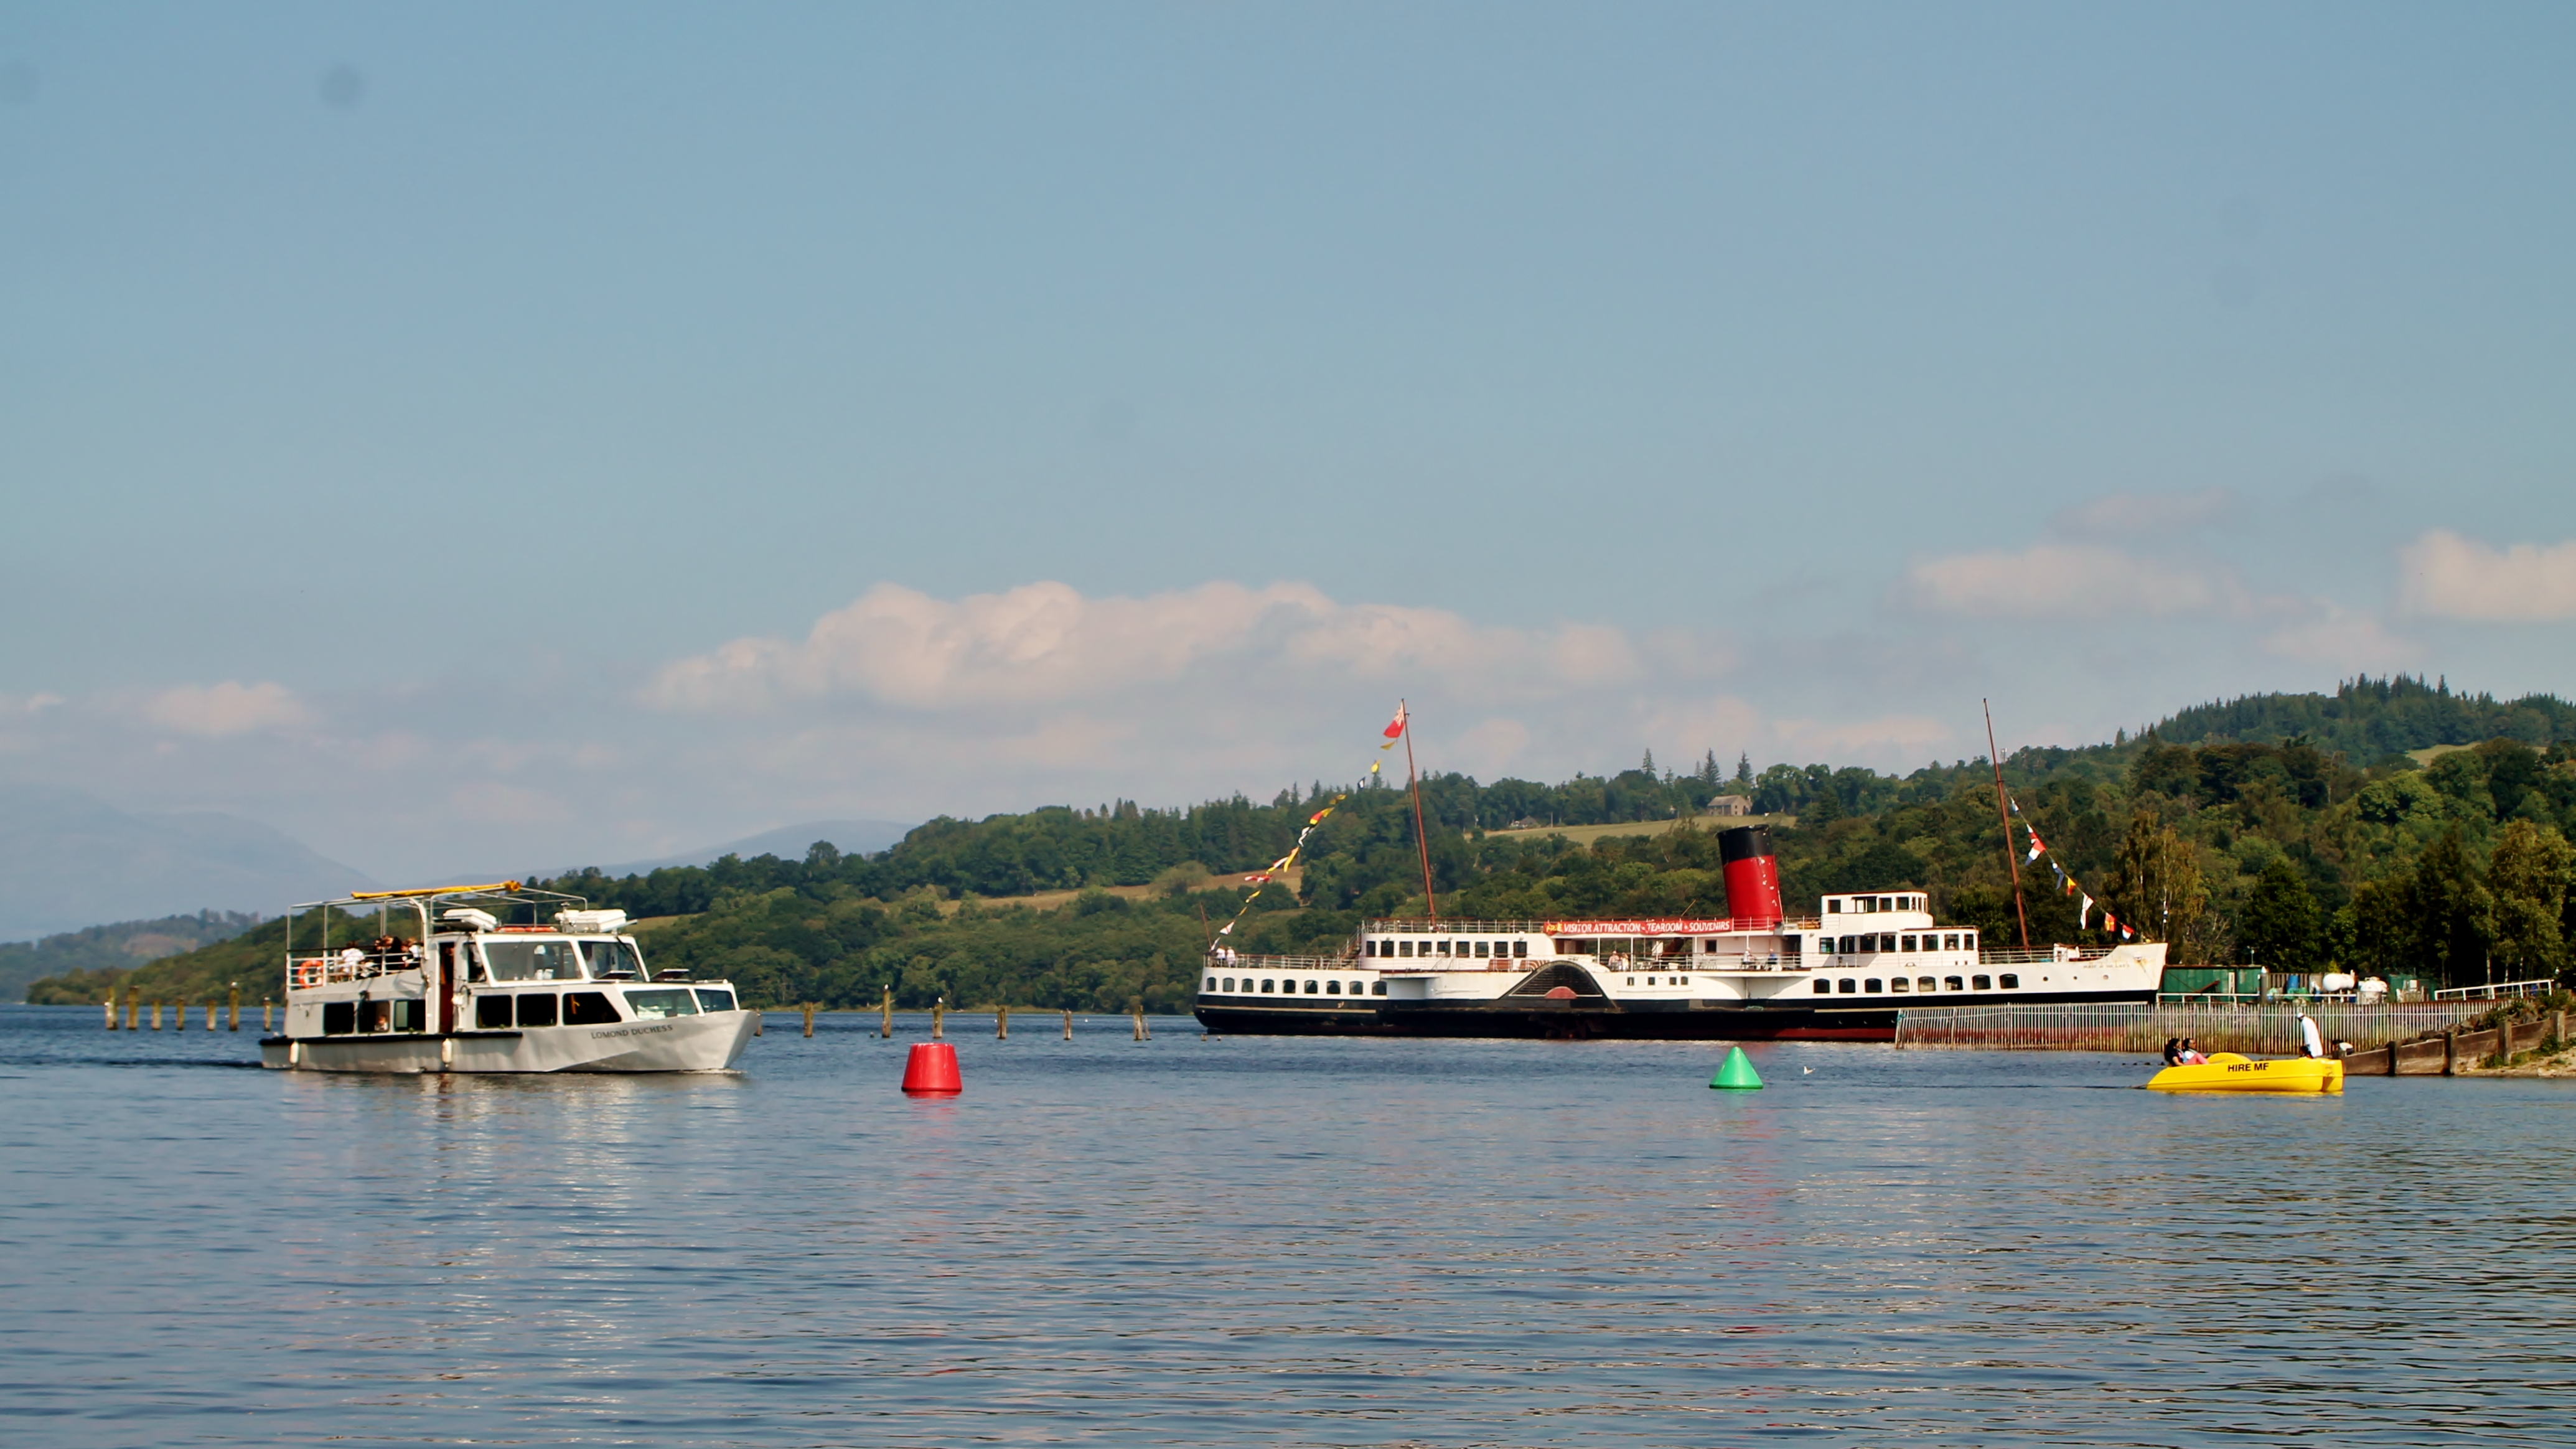 Maid of the Loch and Osprey